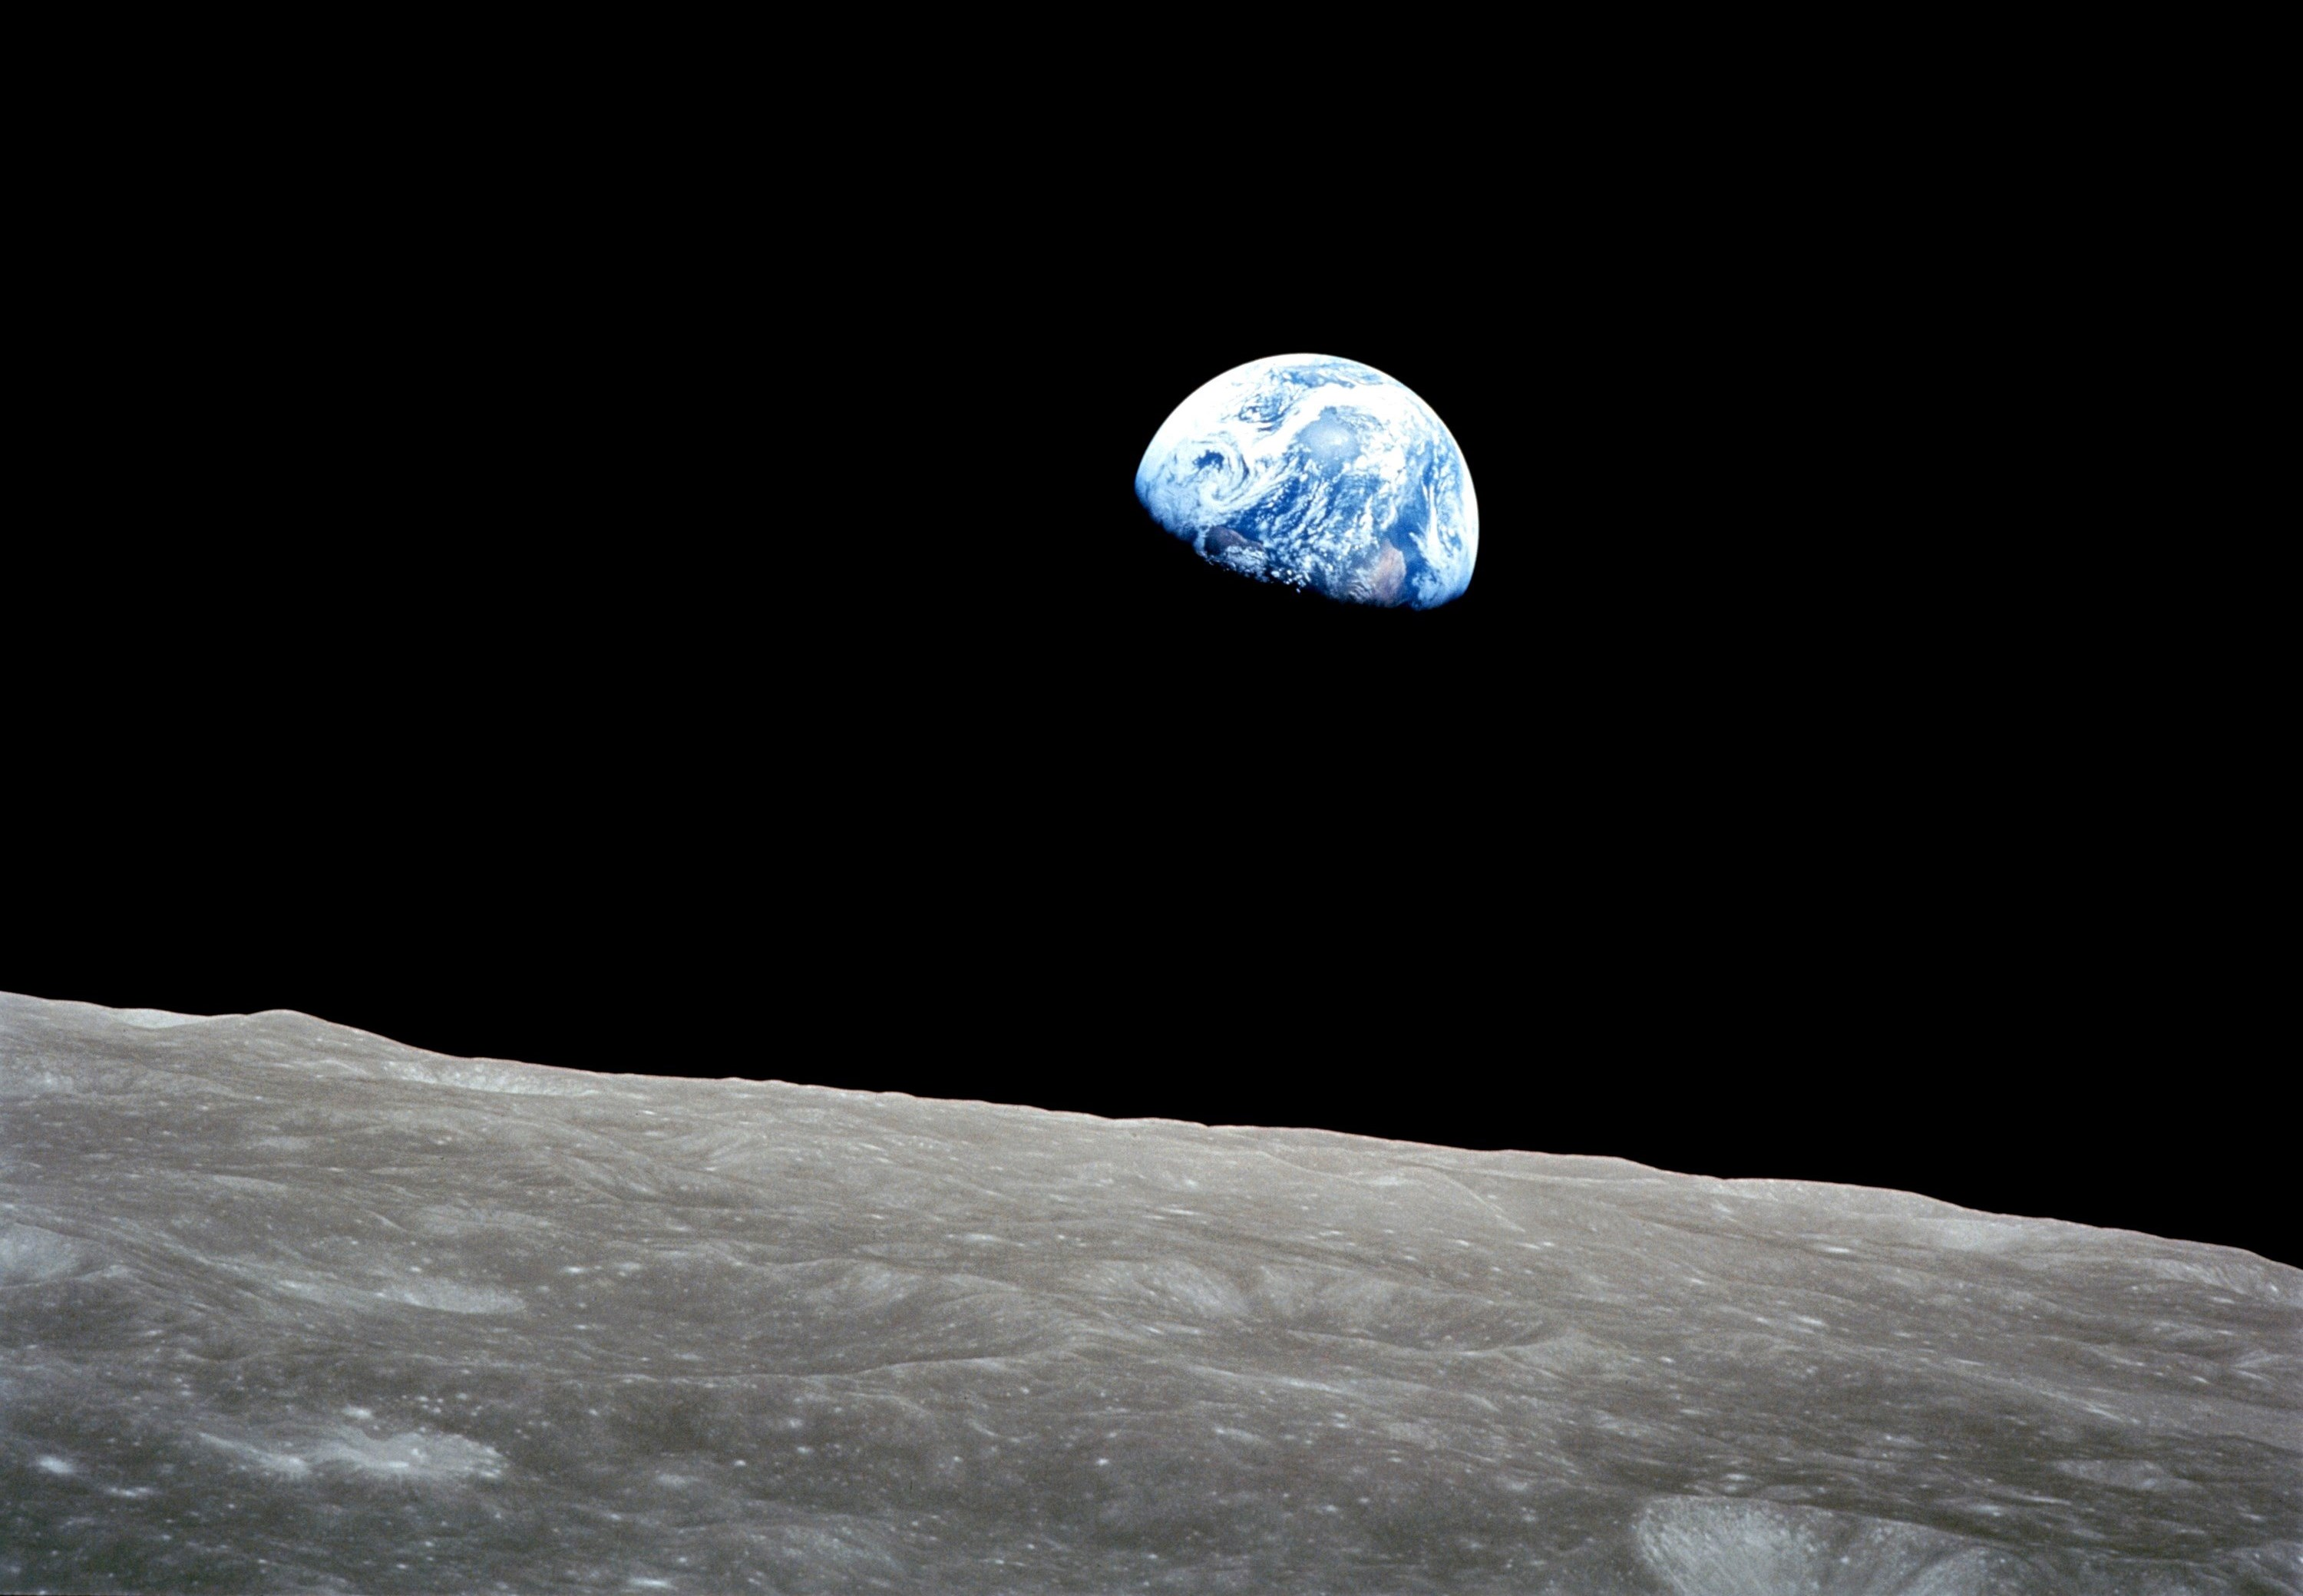 Earthrise from lunar orbit (NASA/JPL)